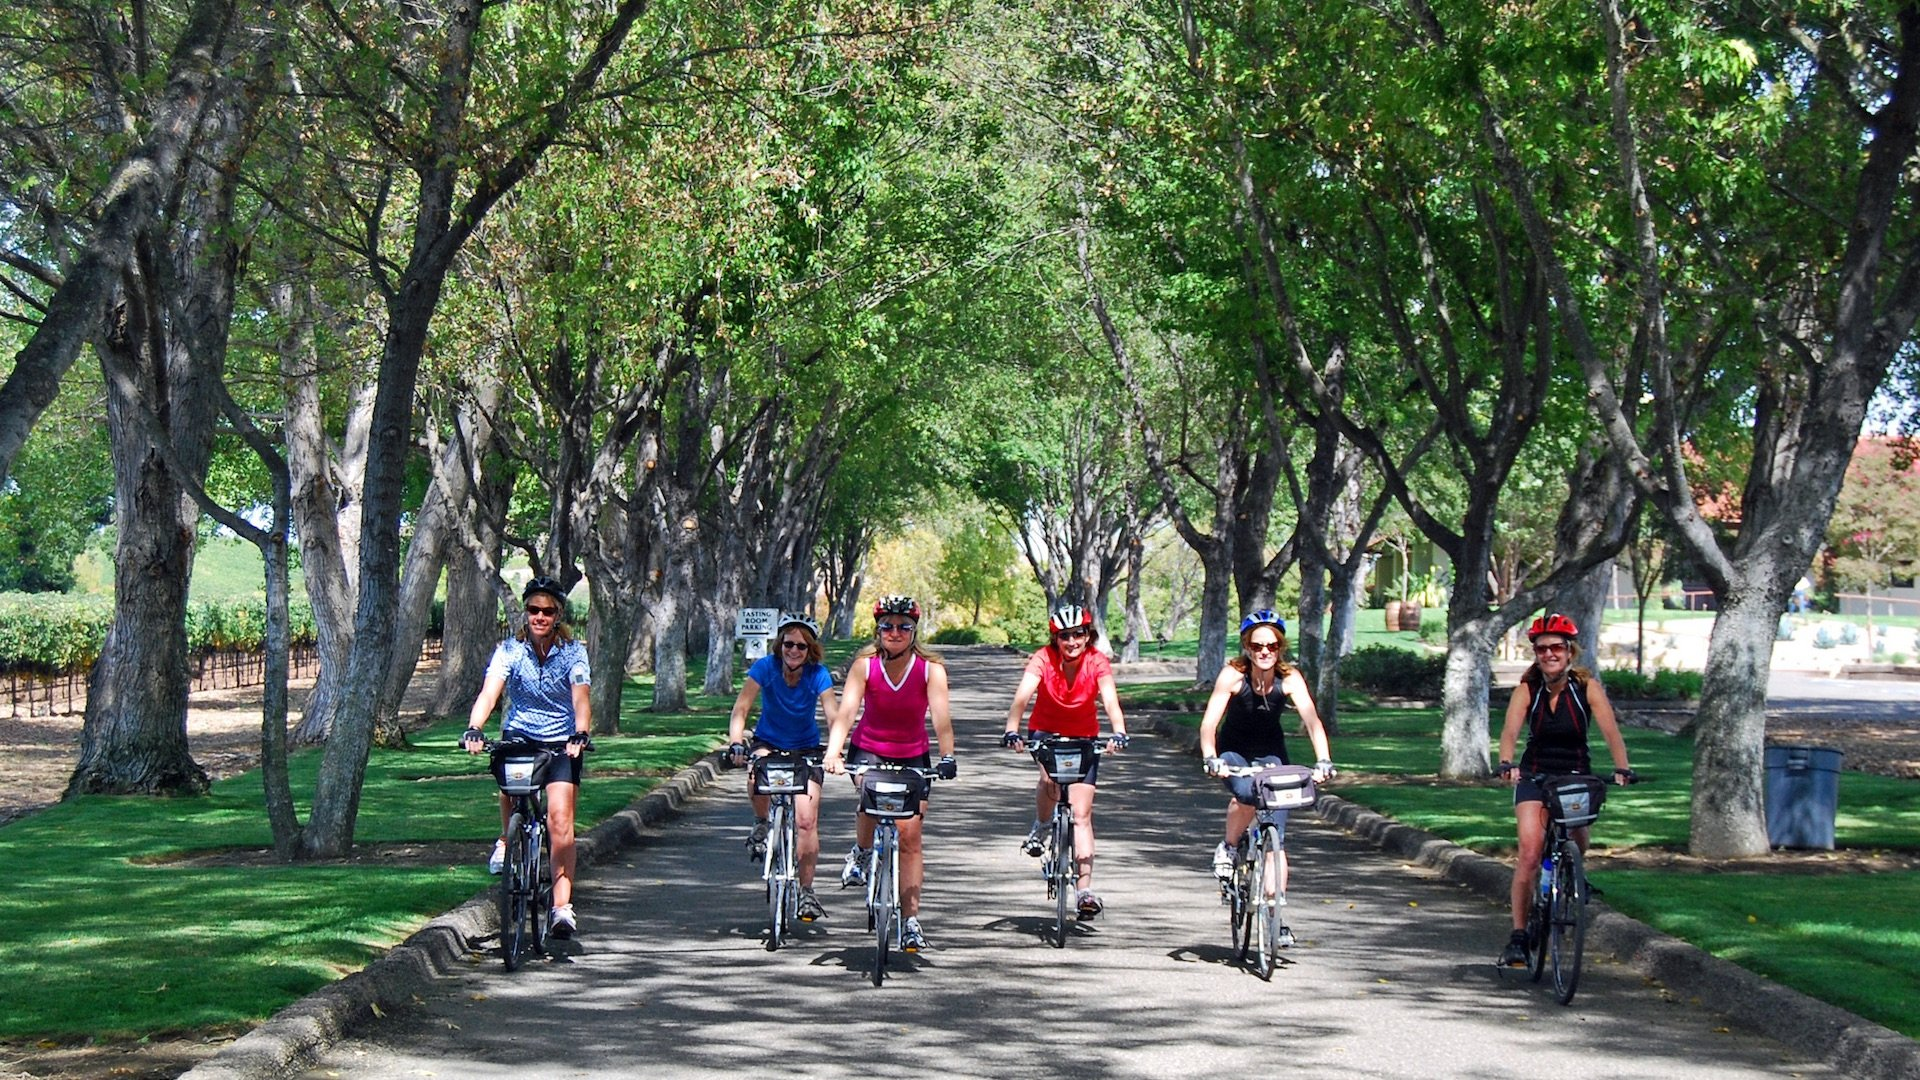 Solvang Meetings - Enjoy Cycling